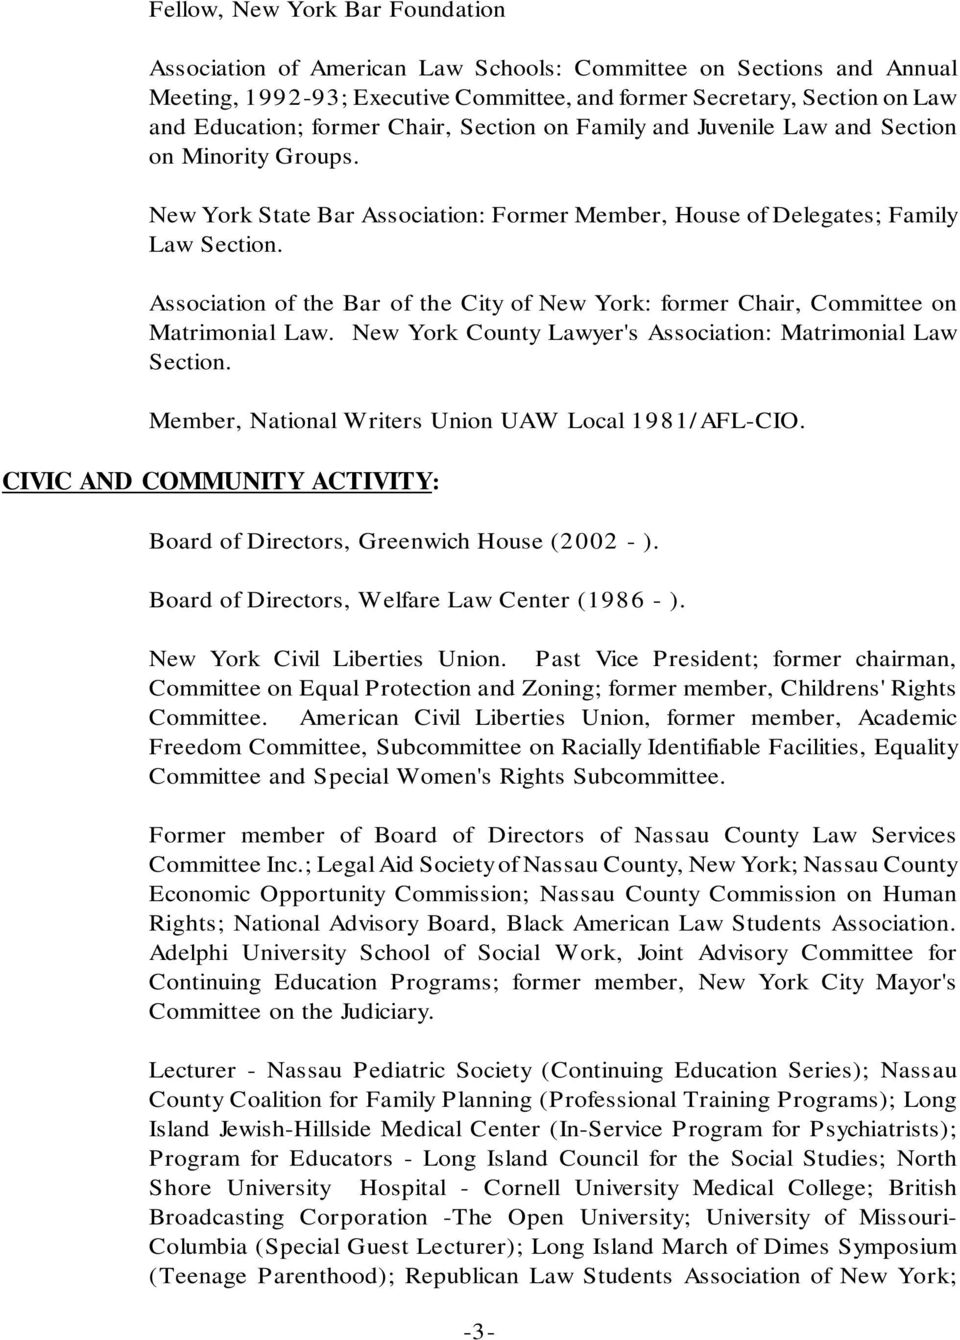 Association of the Bar of the City of New York: former Chair, Committee on Matrimonial Law. New York County Lawyer's Association: Matrimonial Law Section.